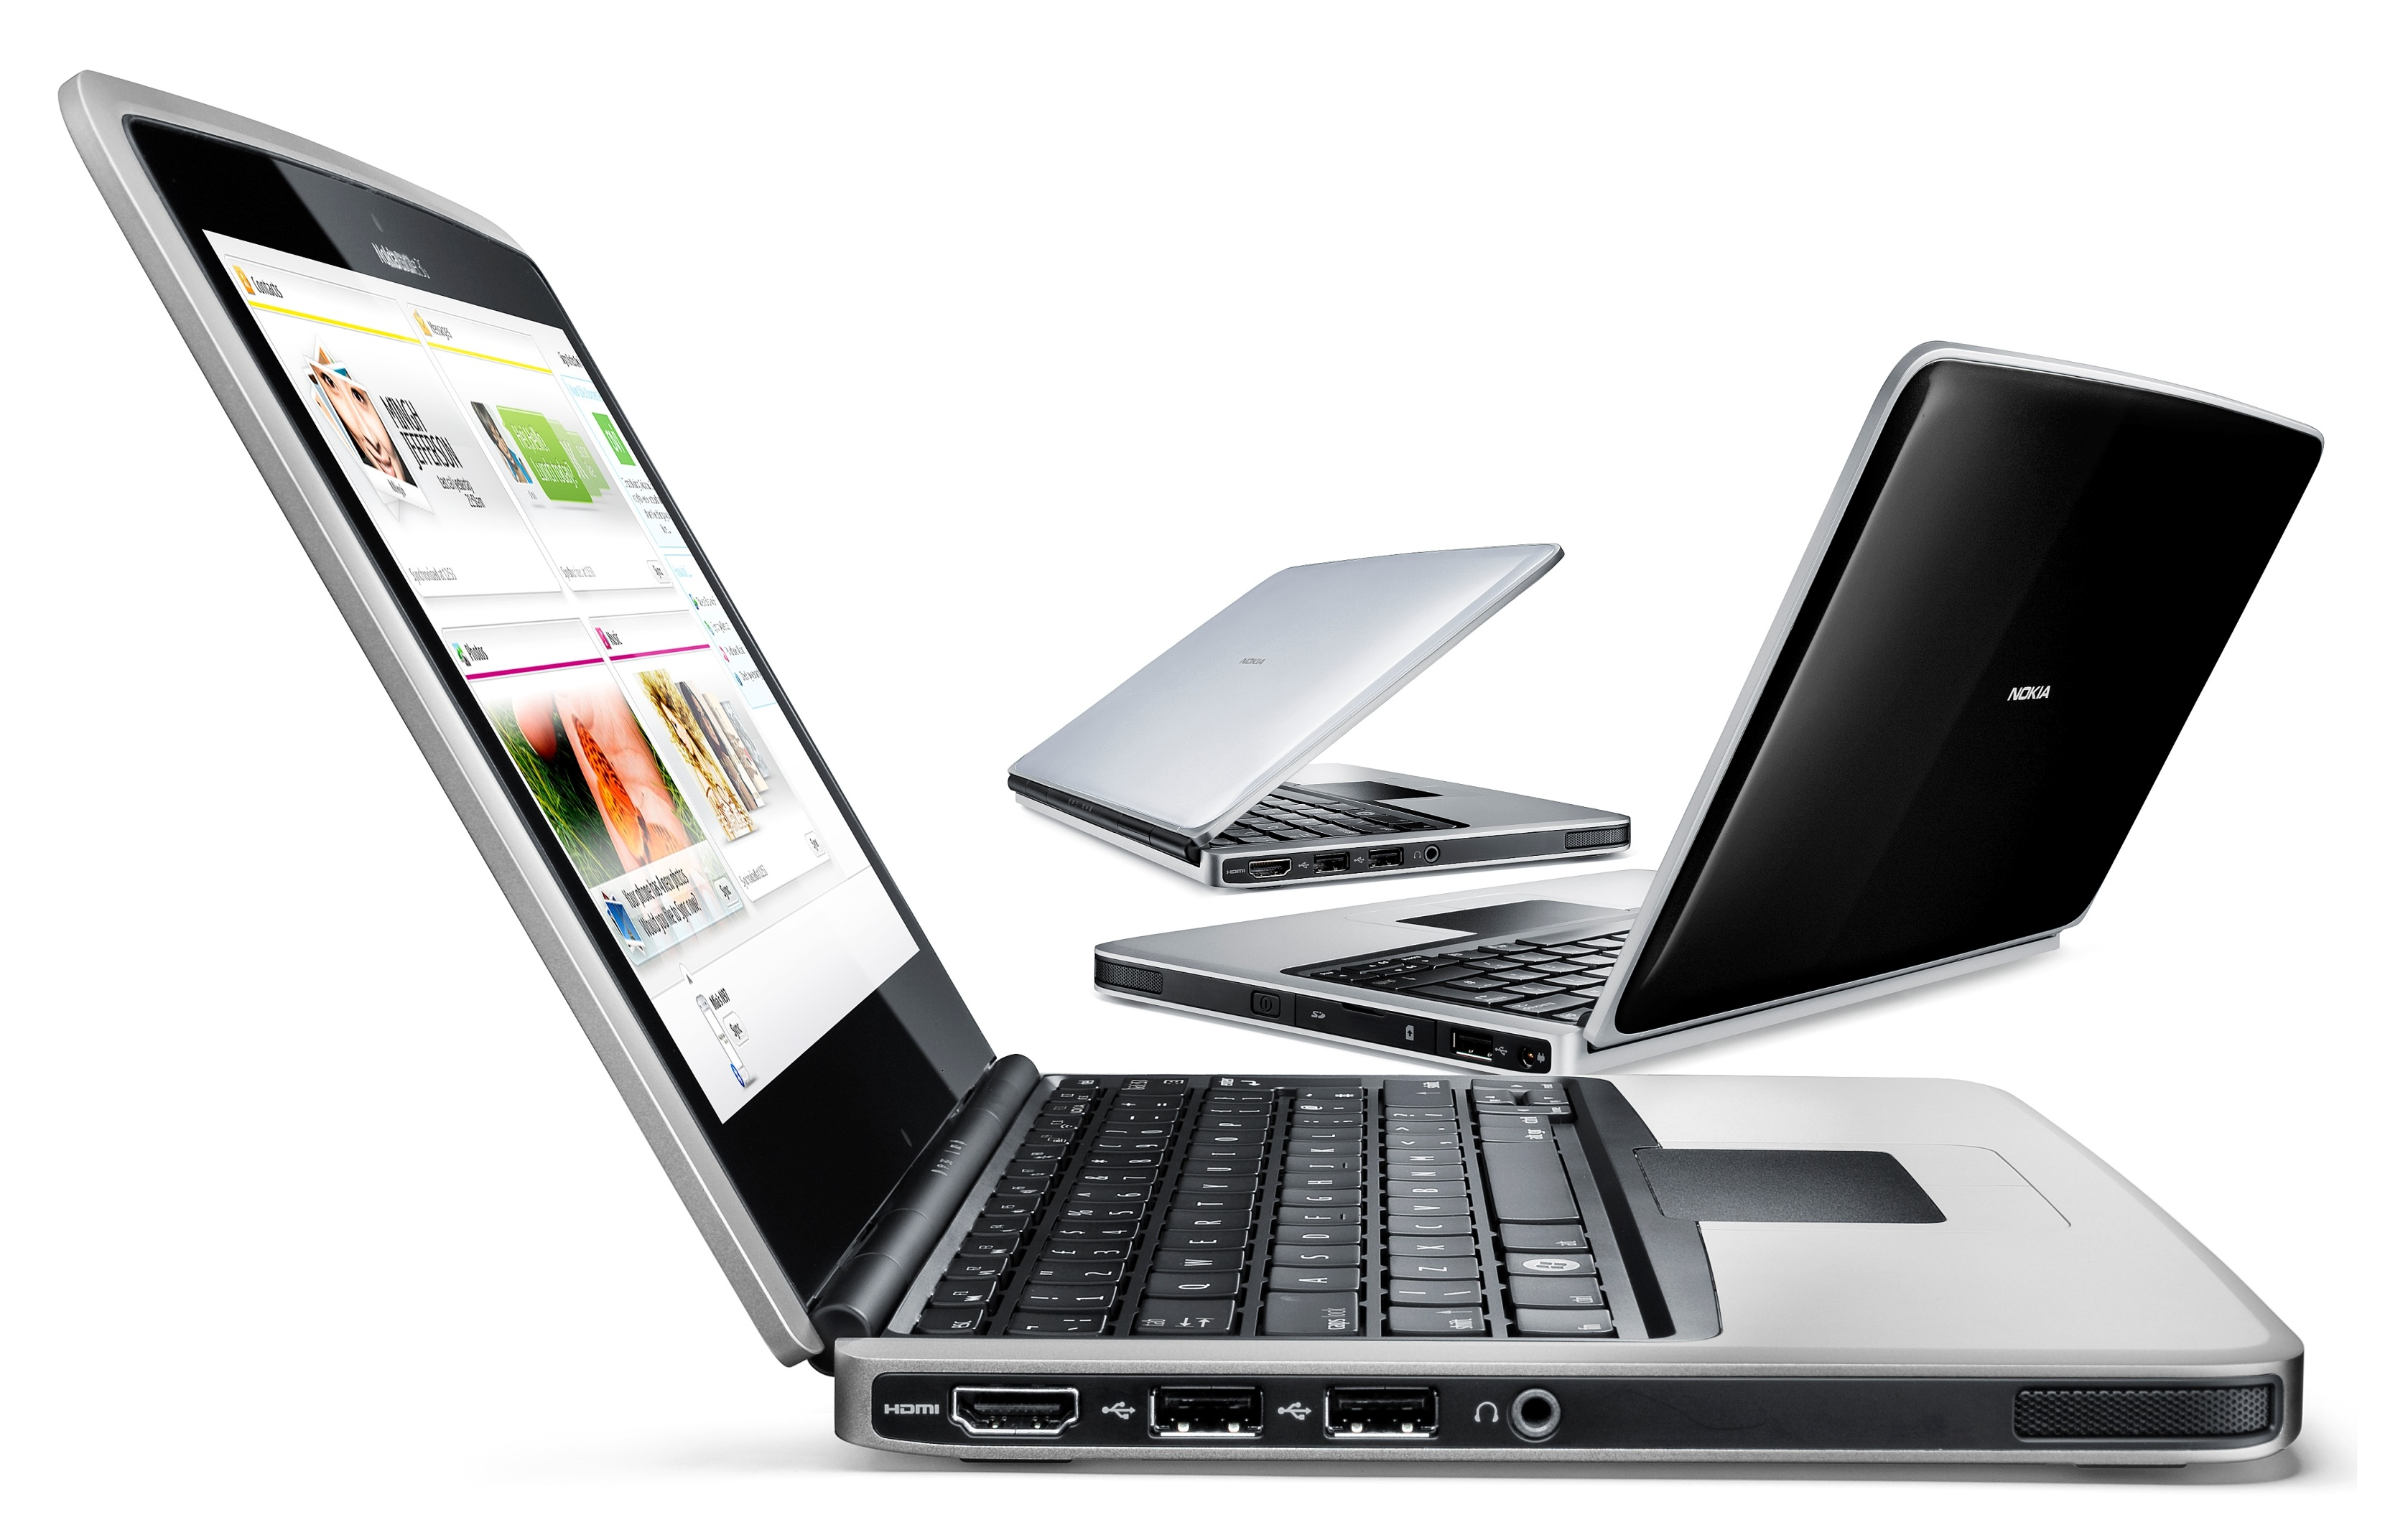 Nokia Booklet 3G netbook revealed: 12hr battery, HSPA and GPS [Video]